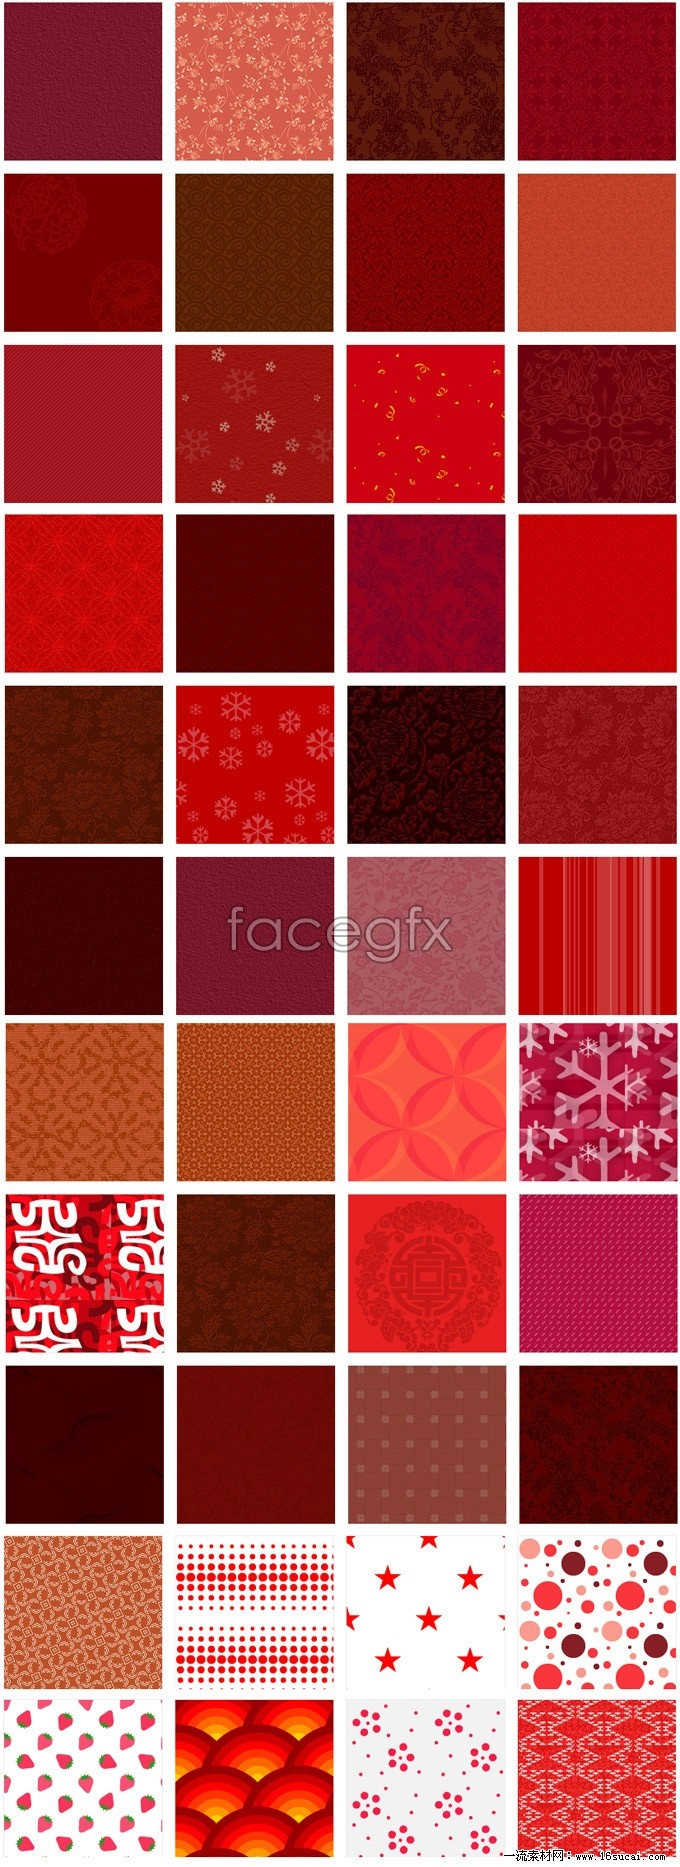 Red page background highlights package